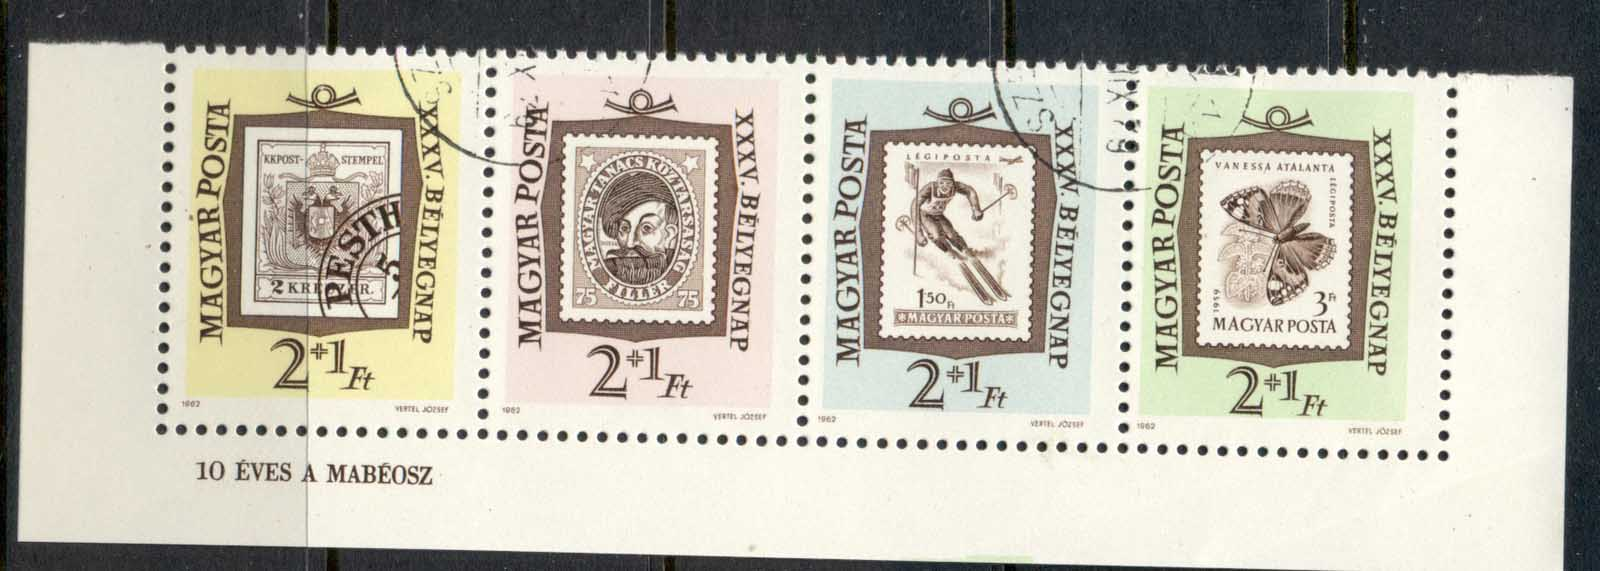 Hungary 1962 Stamp Day str4 CTO